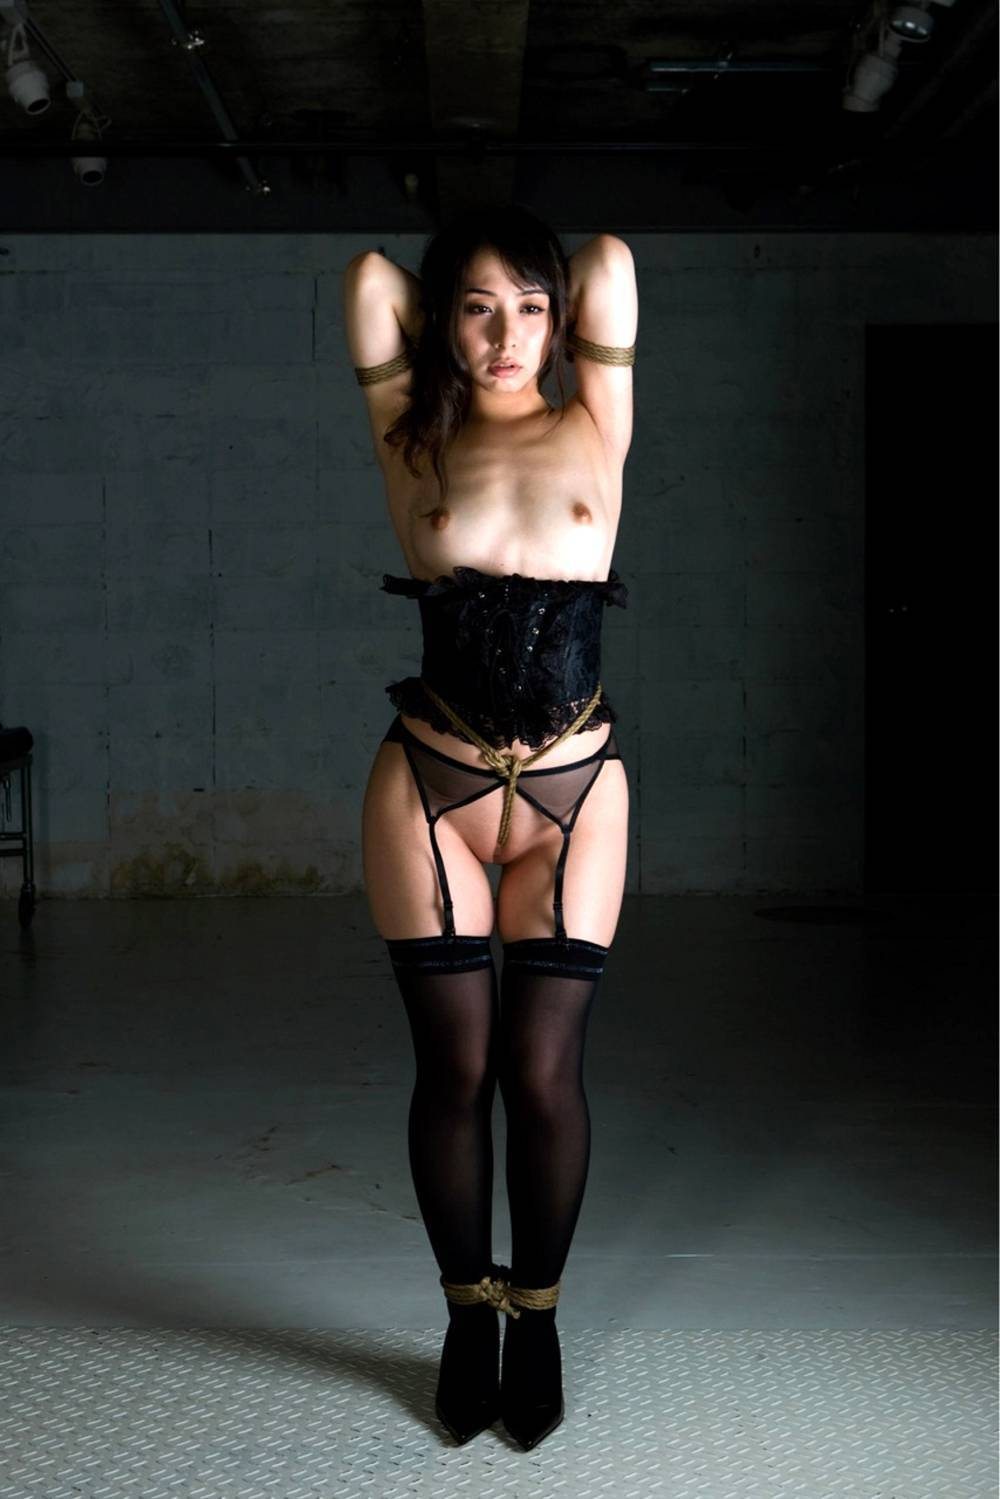 Simple yet effective rope bondage ★ Let's talk: My Discussion Forum